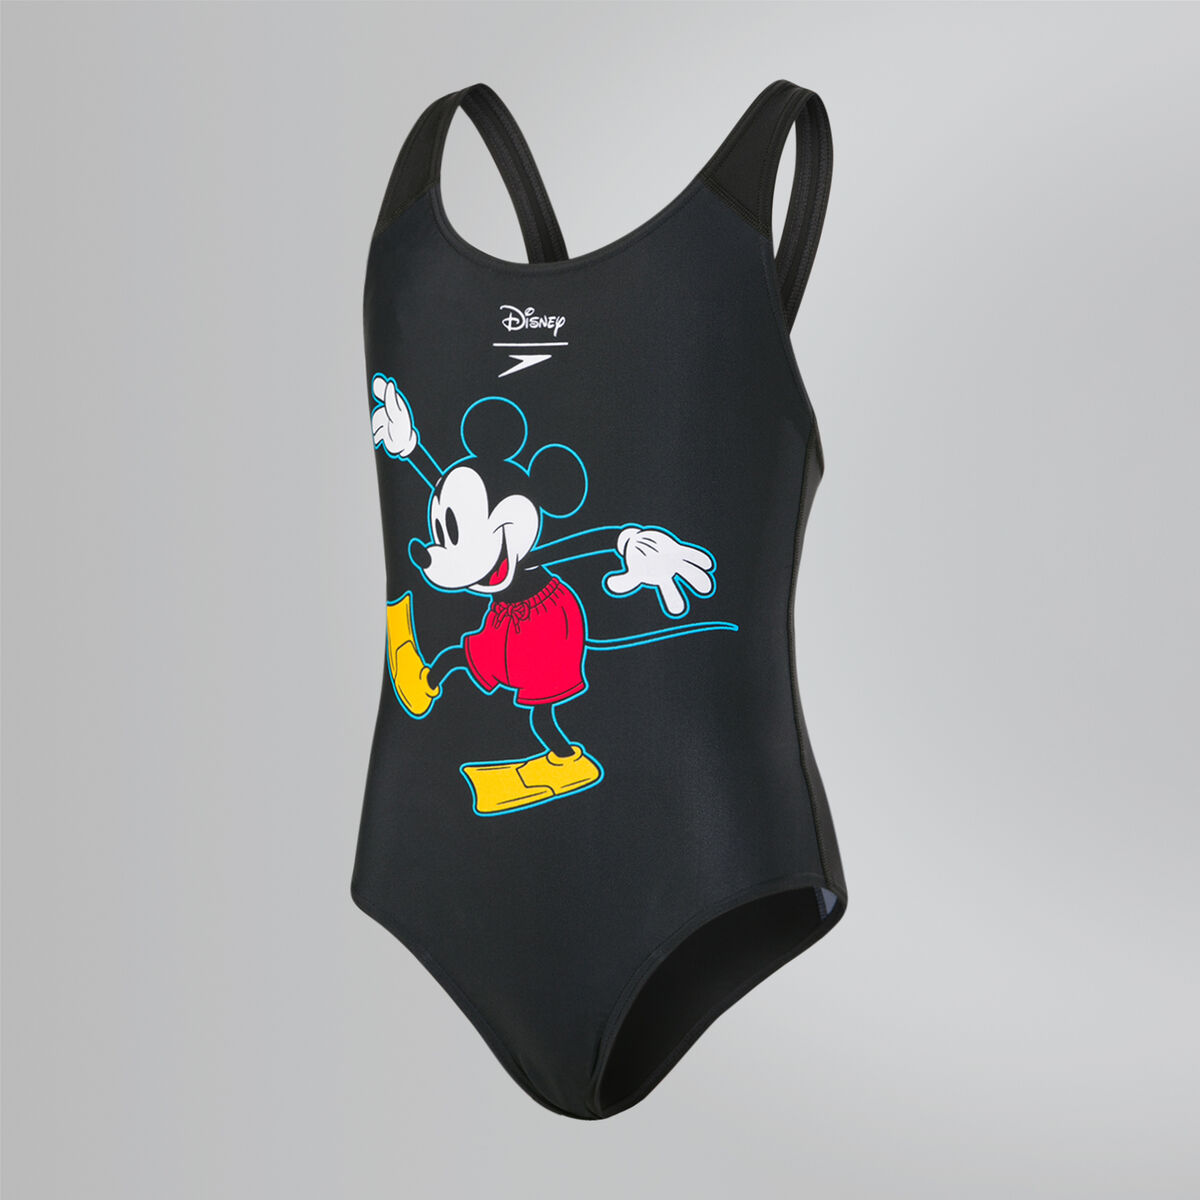 Disney Mickey Mouse Swimsuit.